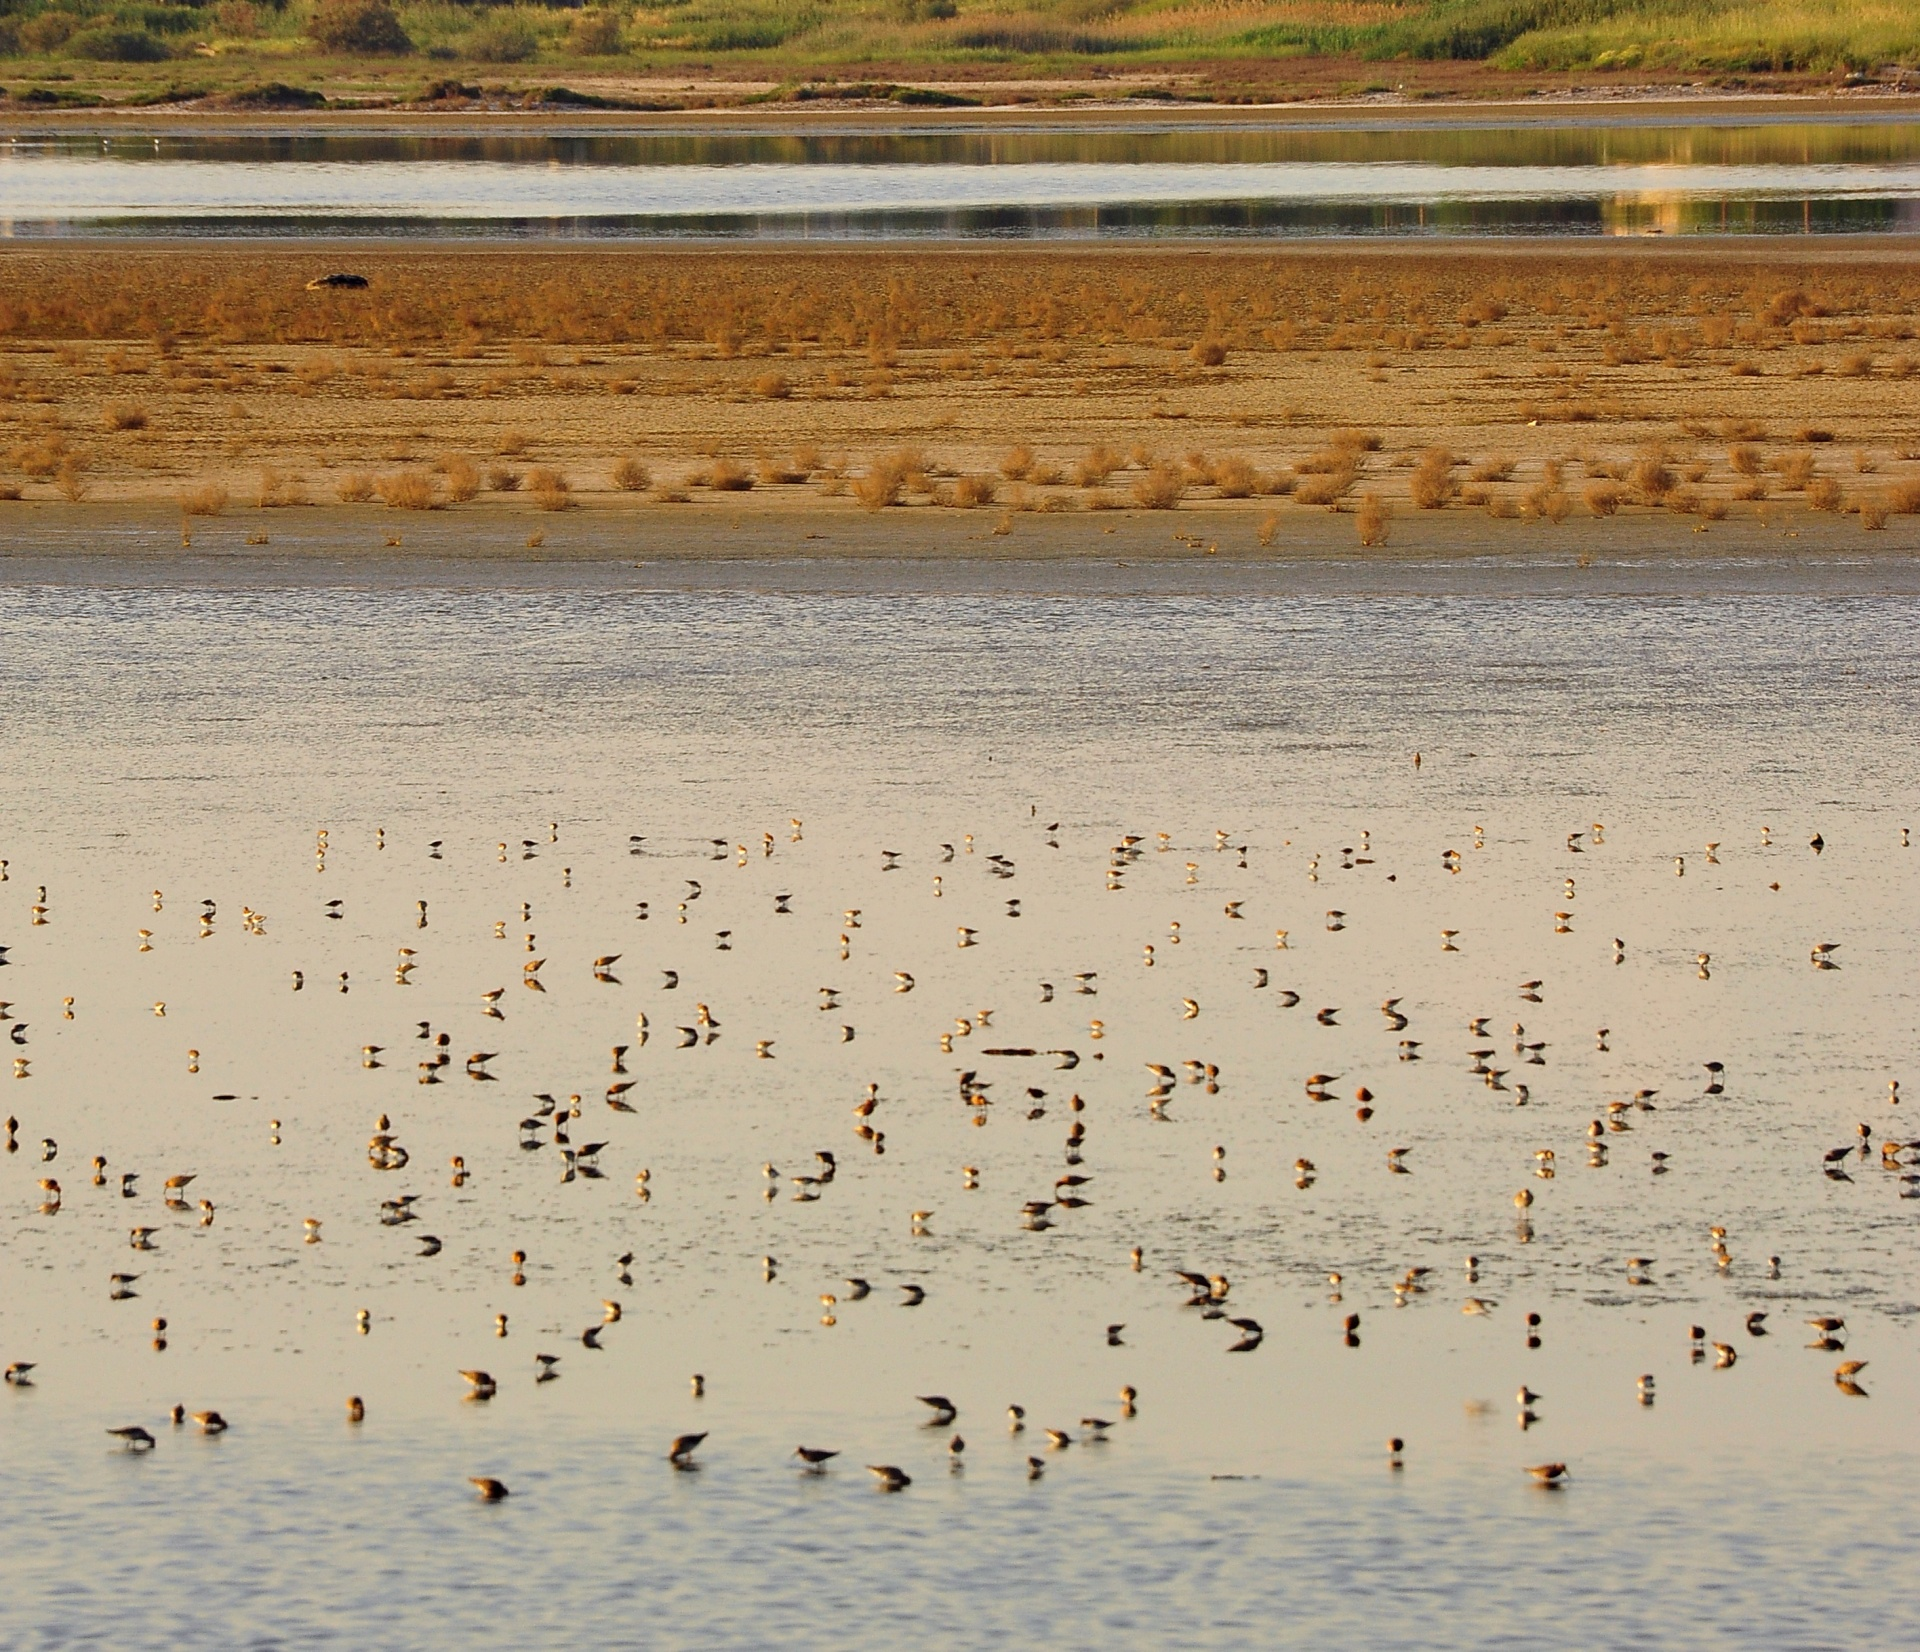 Explore the coastal wetlands just 30' away from the city center